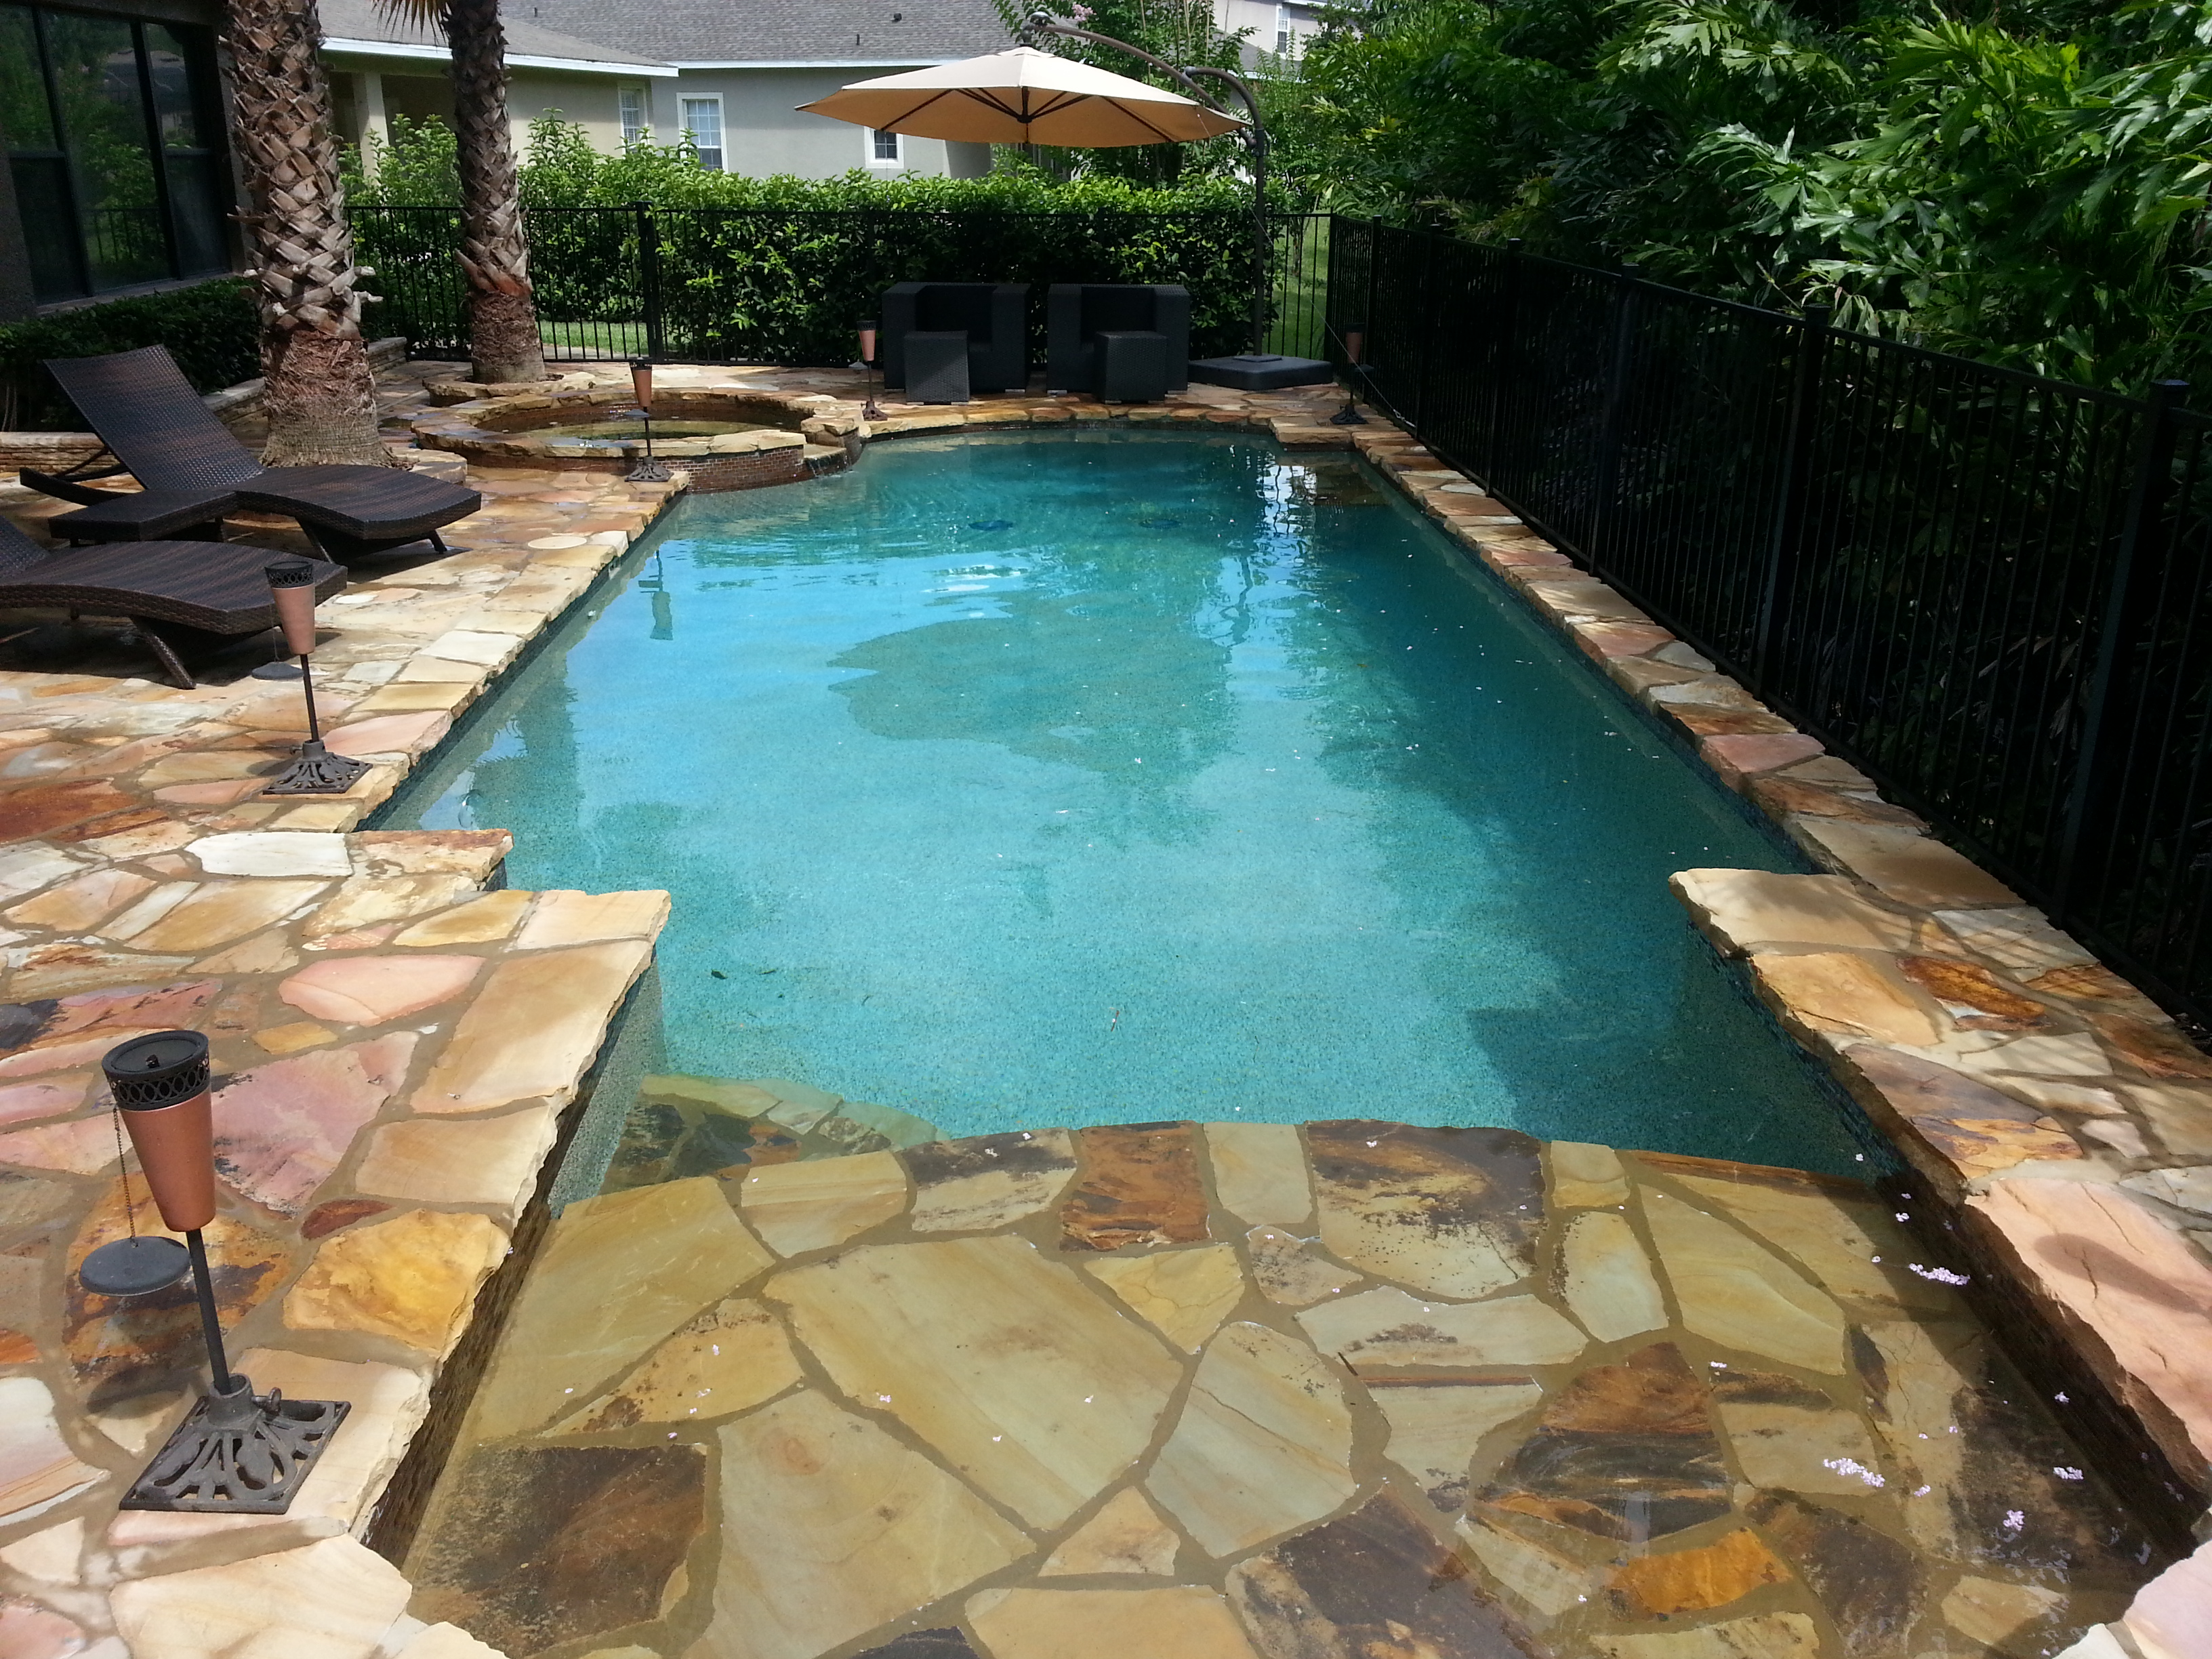 Pools for Small Backyards It Is Possible to Build a Small Backyard Pool